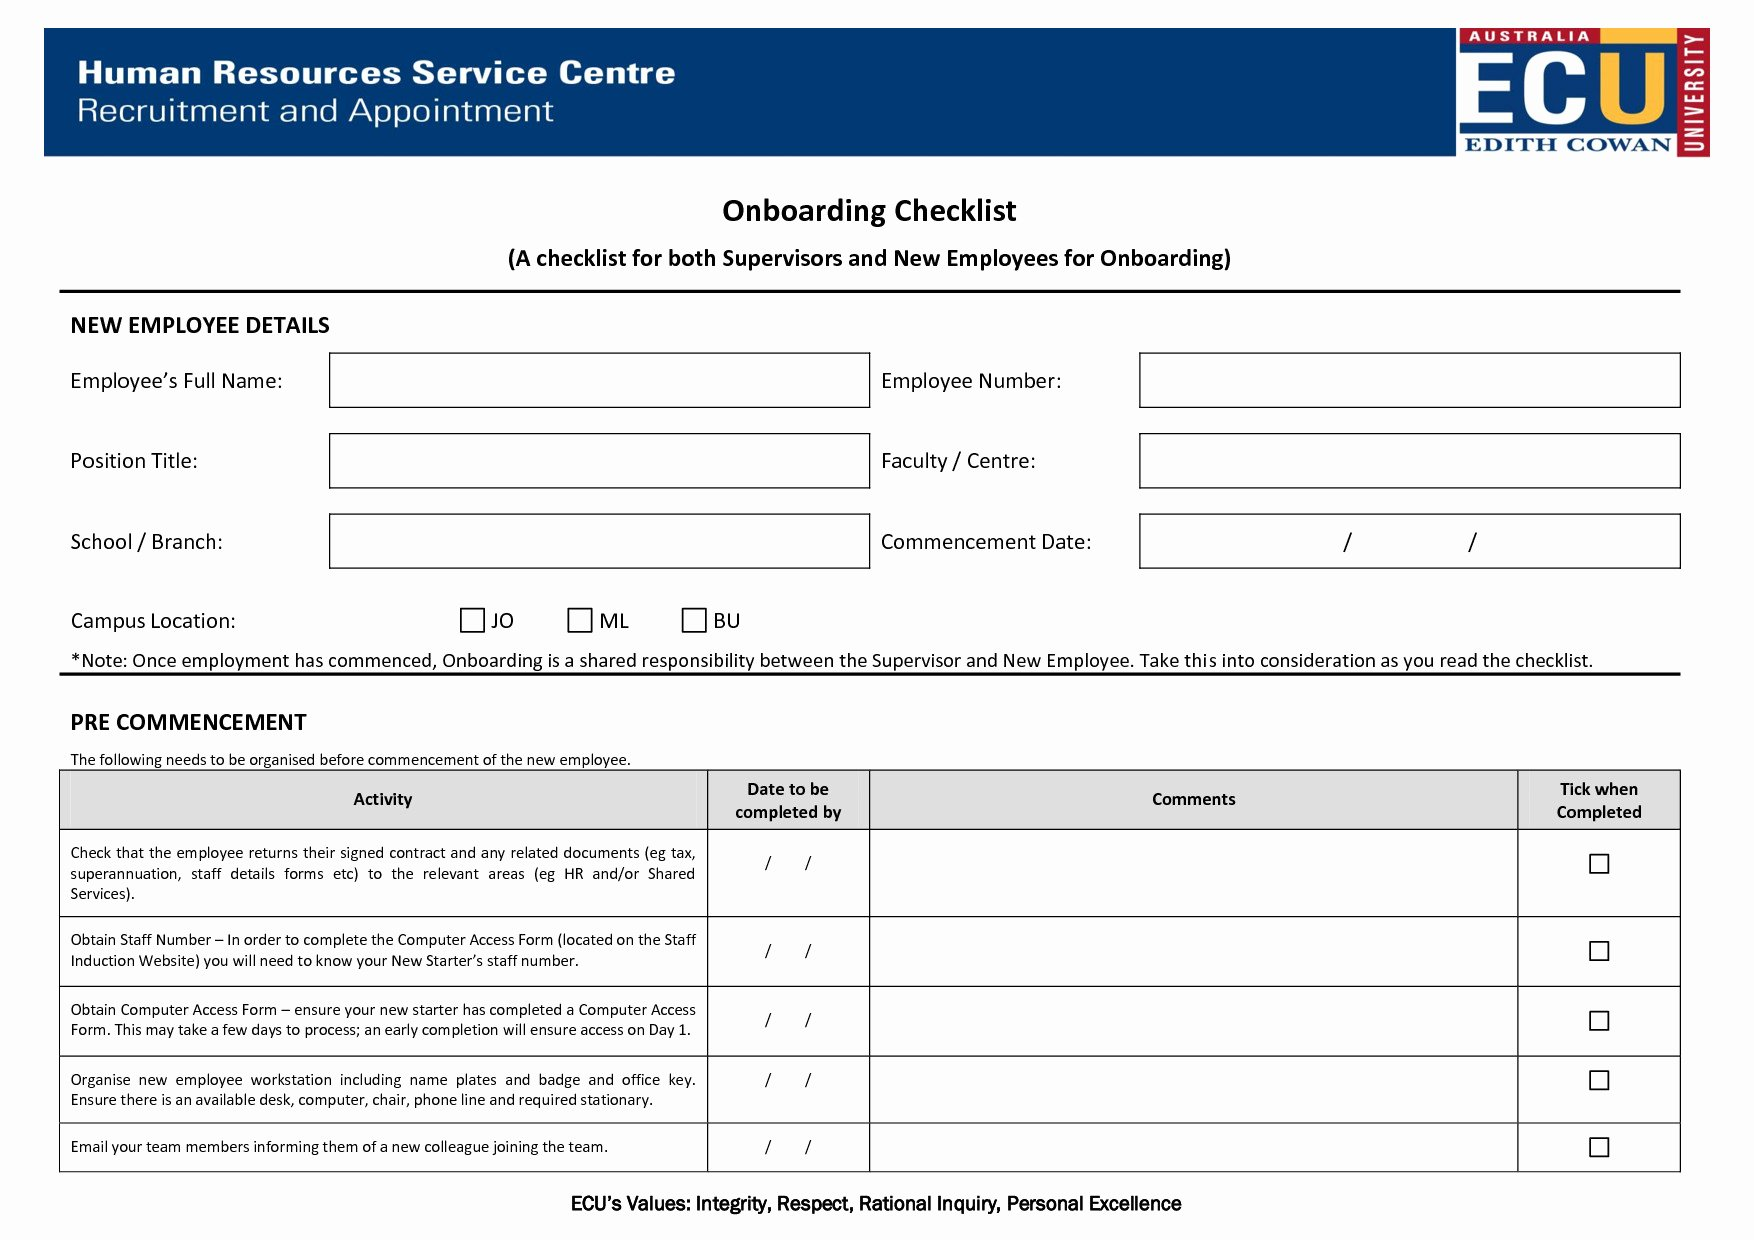 Onboarding Checklist Template Word New Boarding Checklist Template Excel